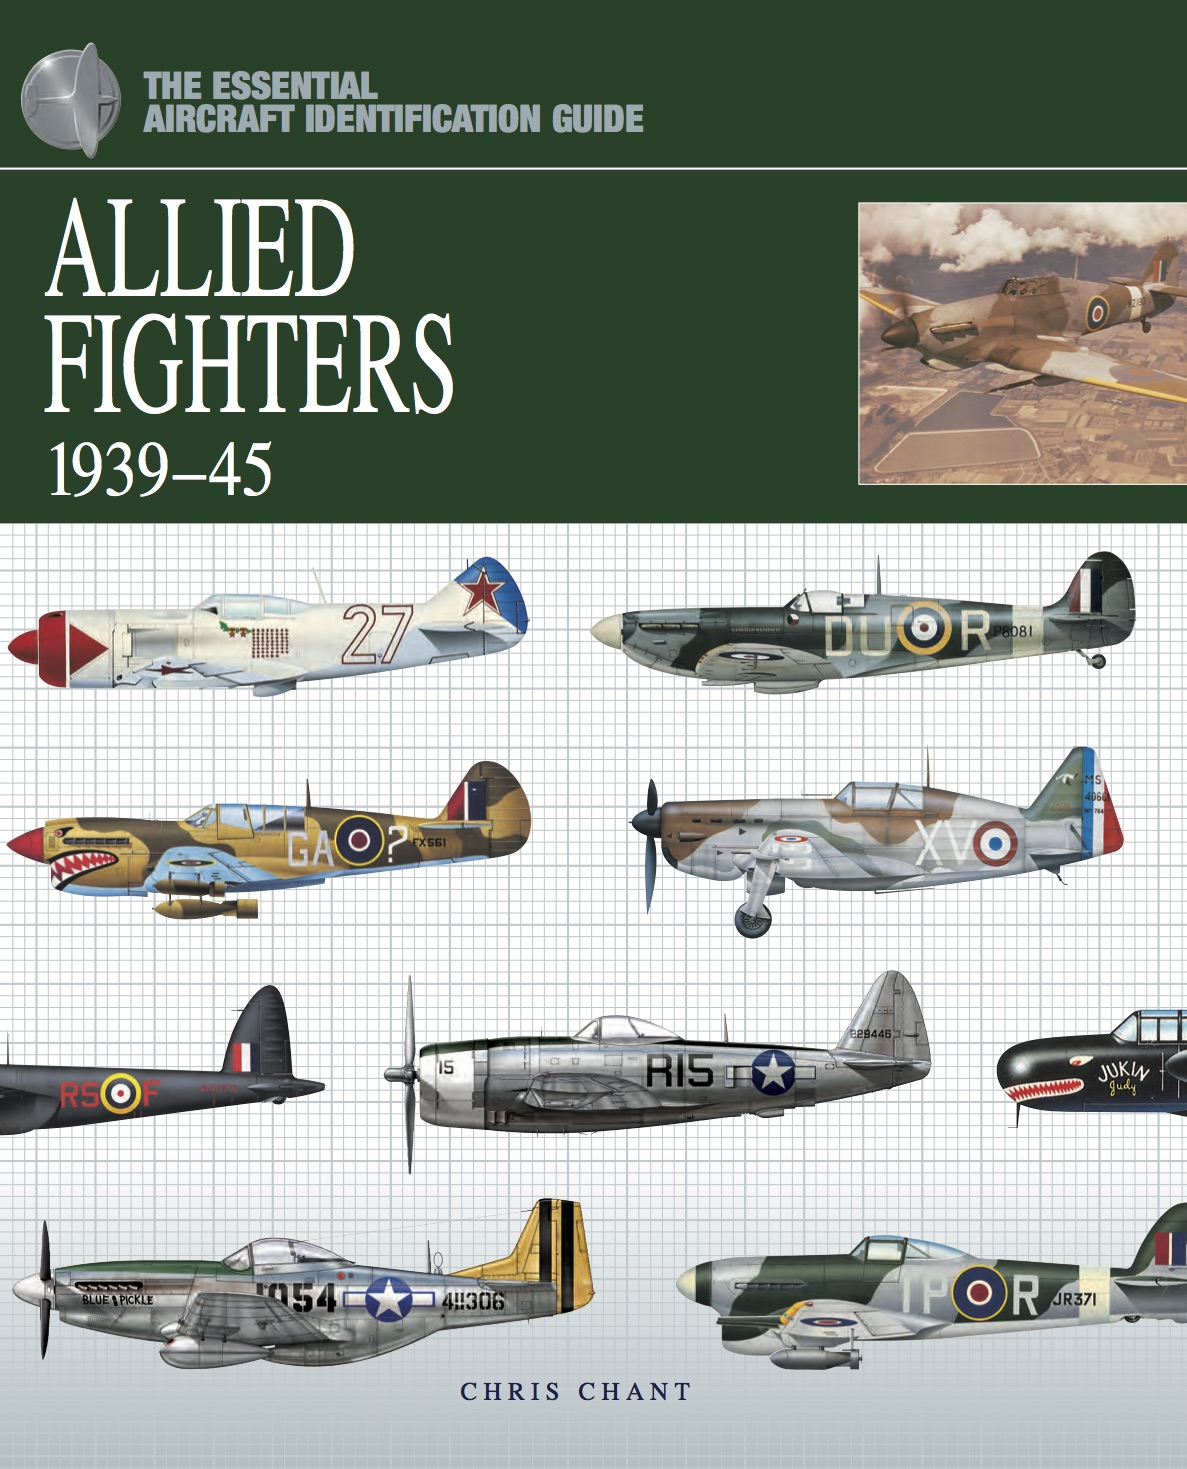 Allied Fighters 1939-45: The Essential Aircraft Identification Guide